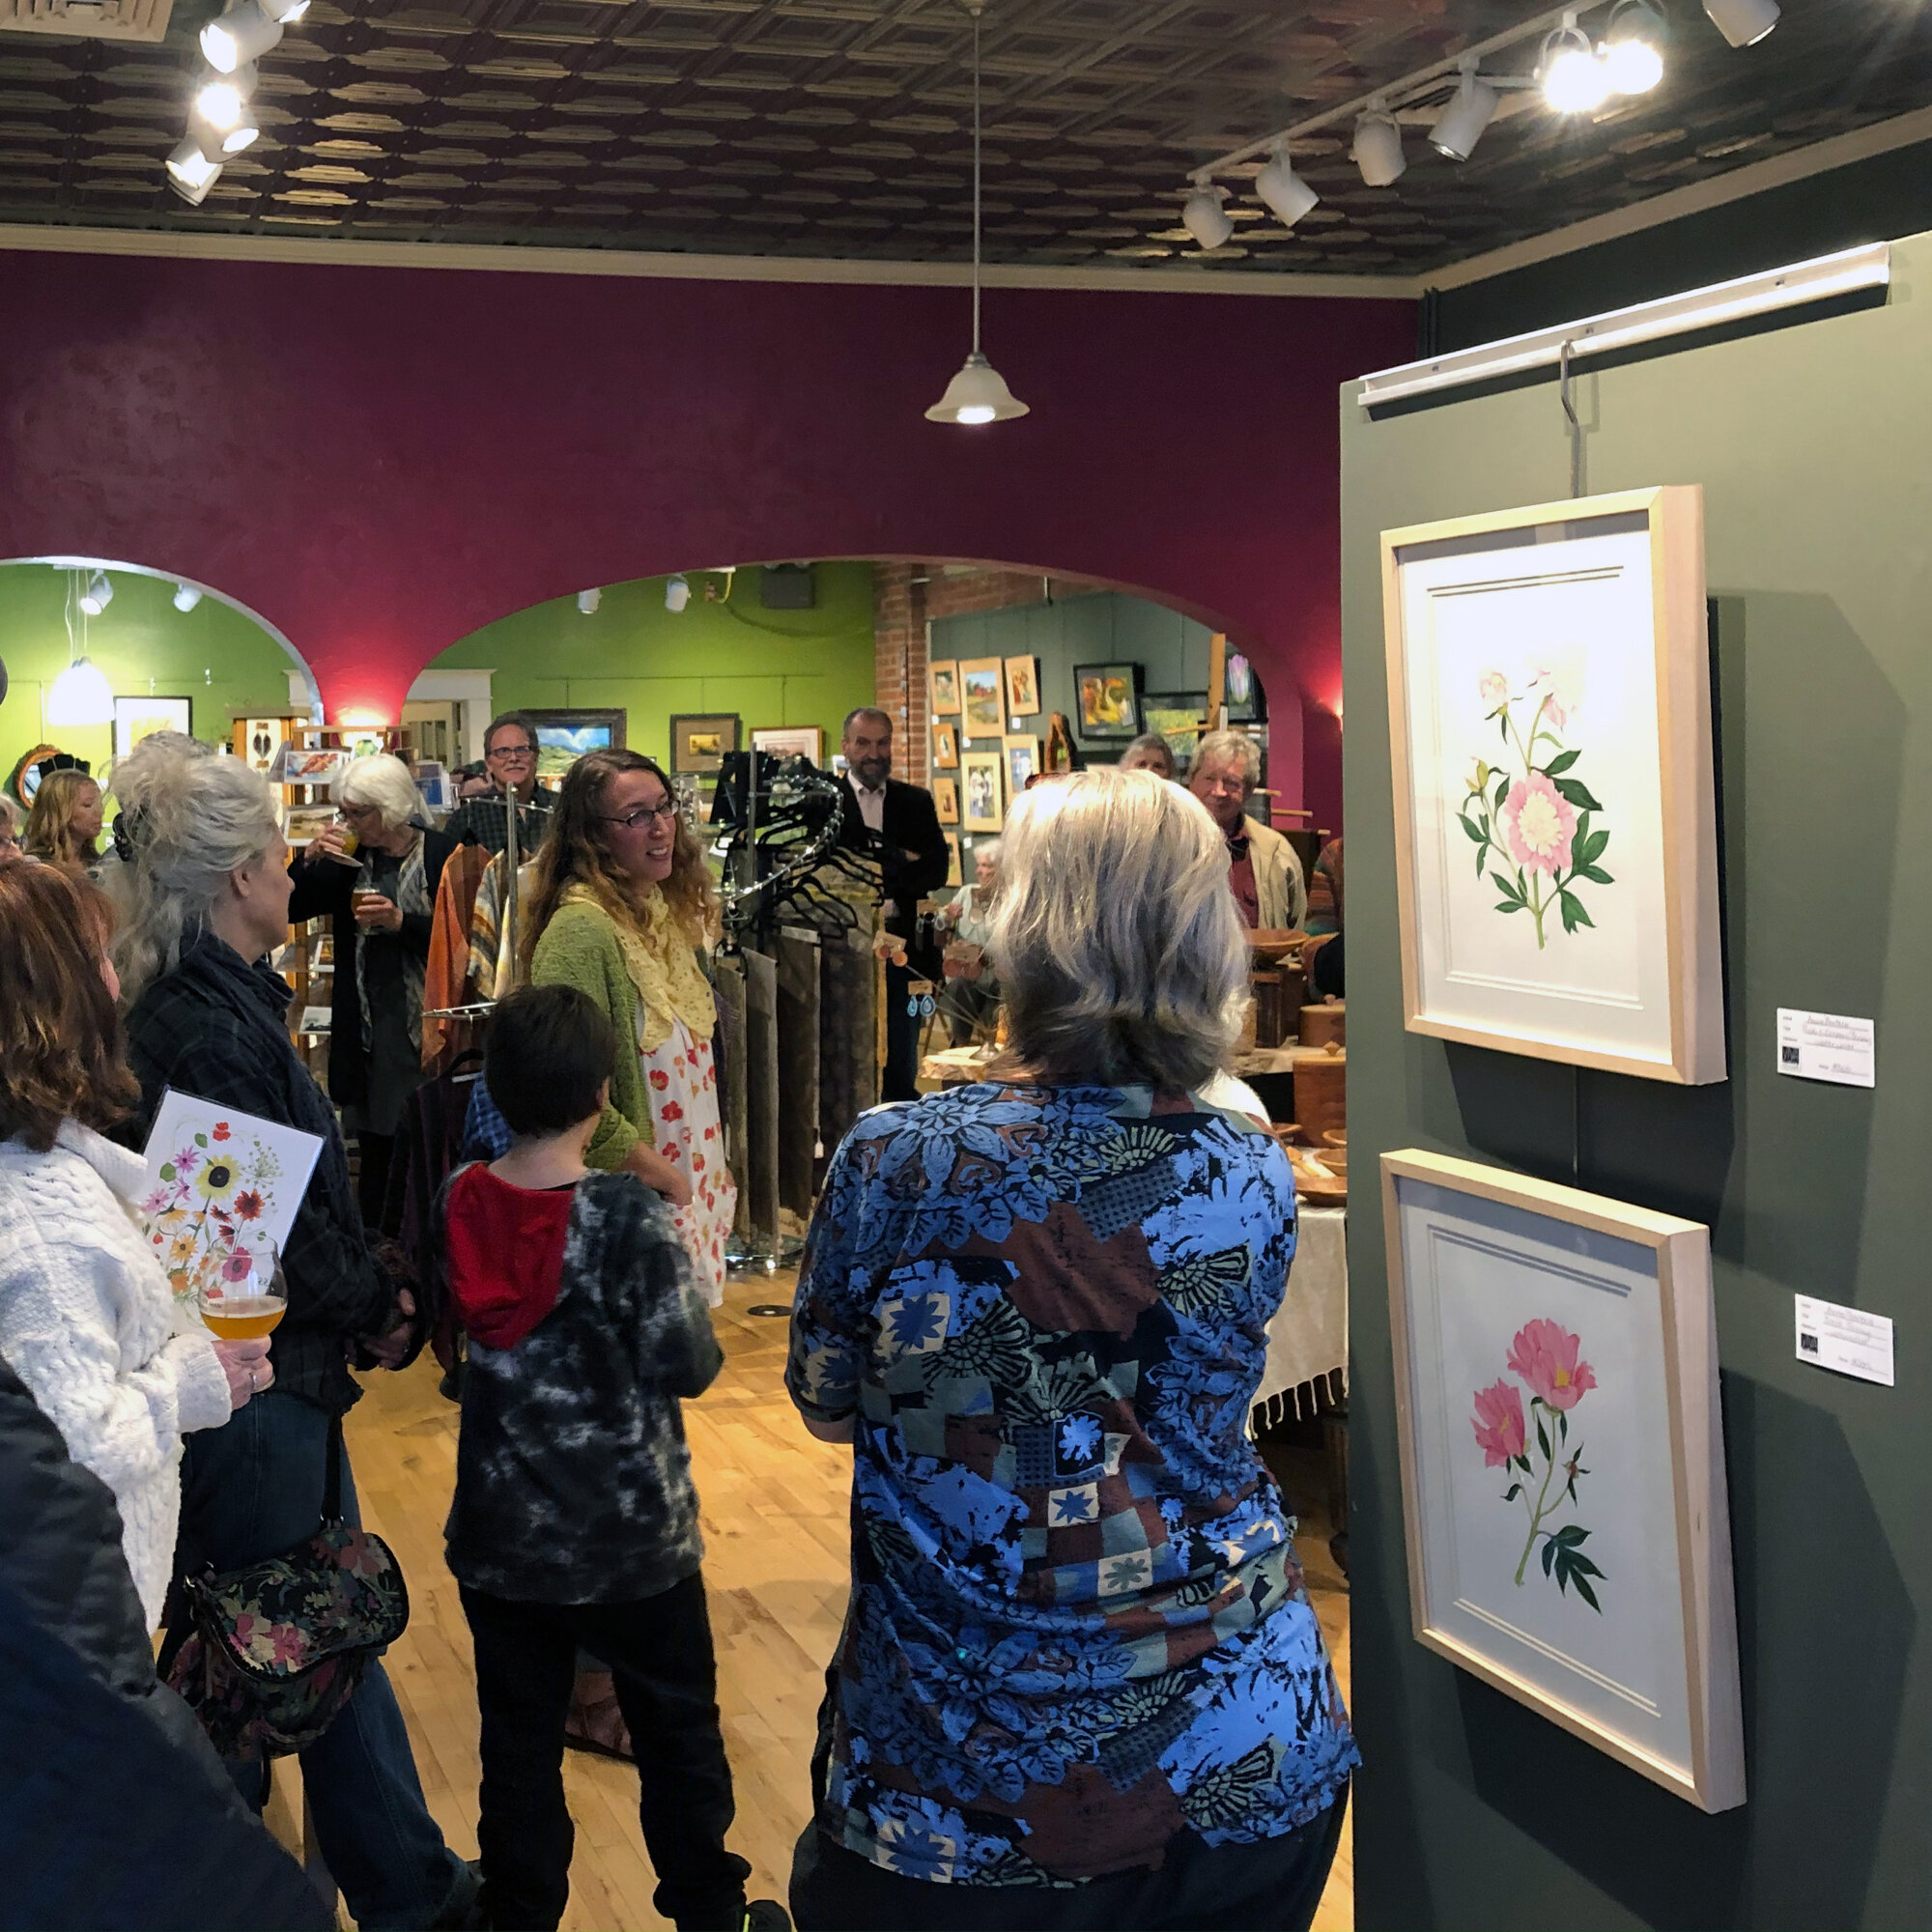 Anne Butera Speaking About Her Art at the Opening Reception of Her Show at Viva Gallery in Viroqua Wisconsin